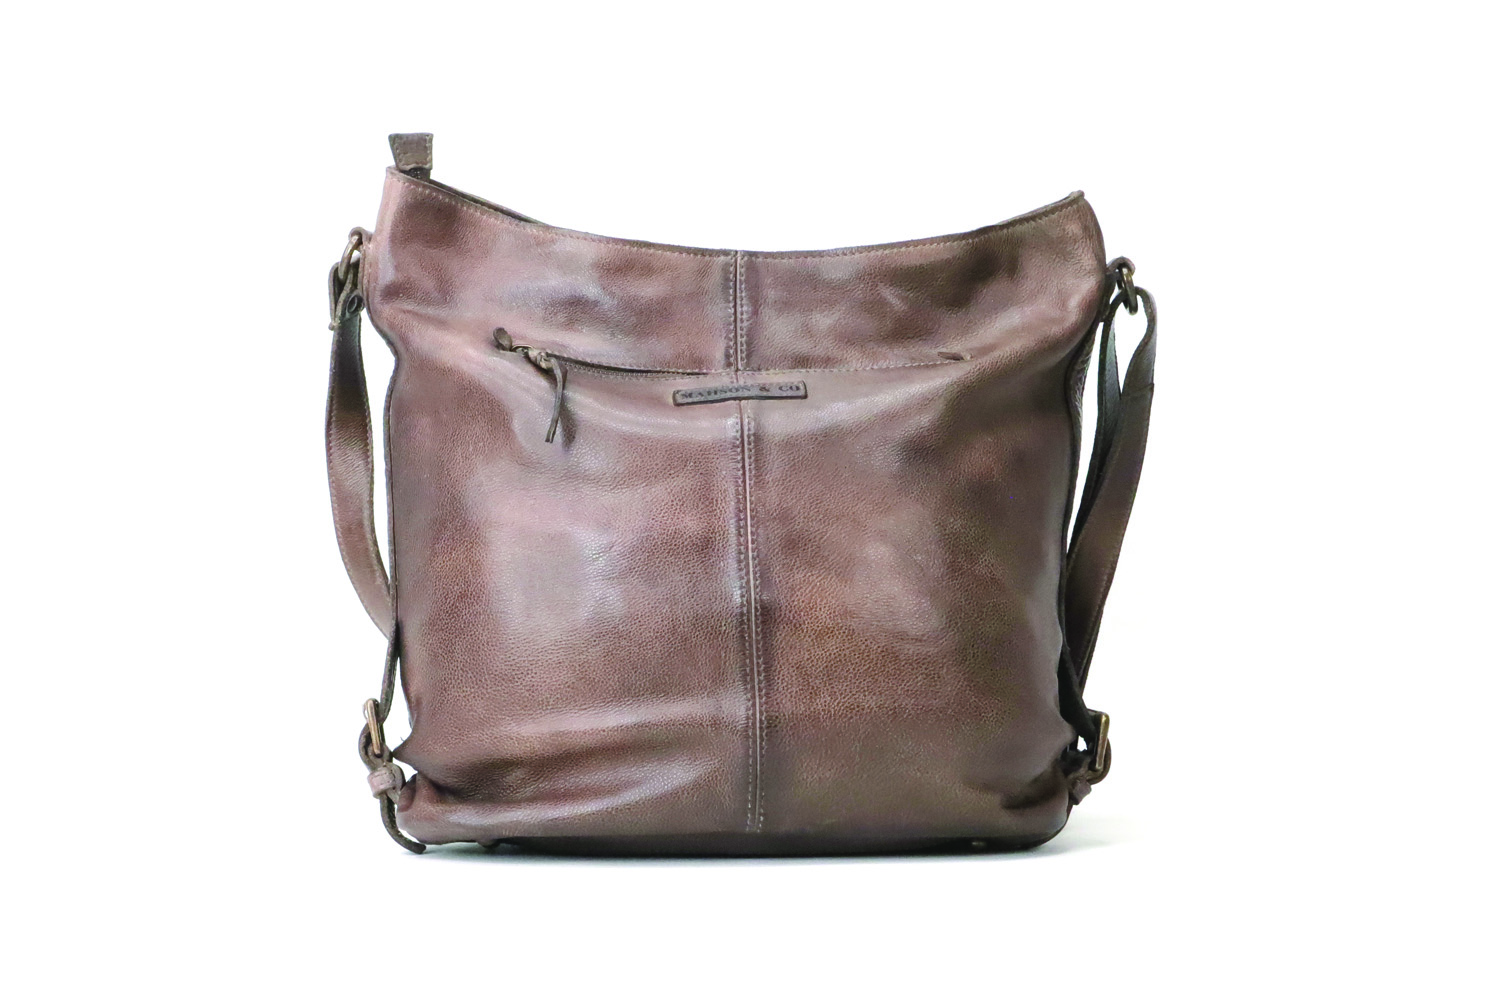 Genuine leather vintage inspired shoulder bag